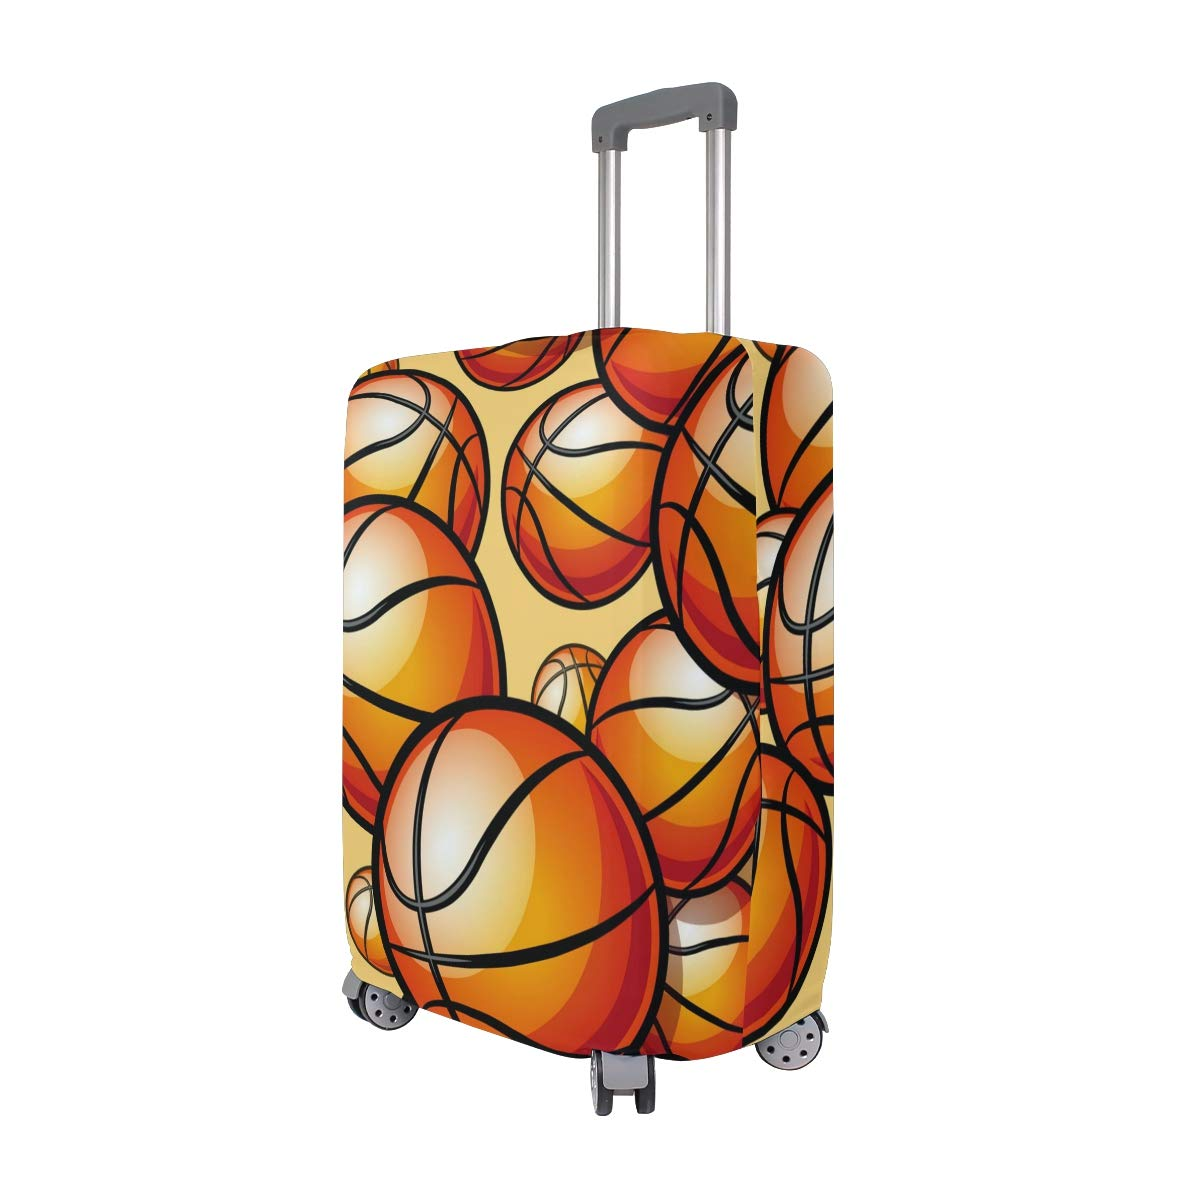 Baggage Covers Painted Sport Basketball Pattern Washable Protective Case